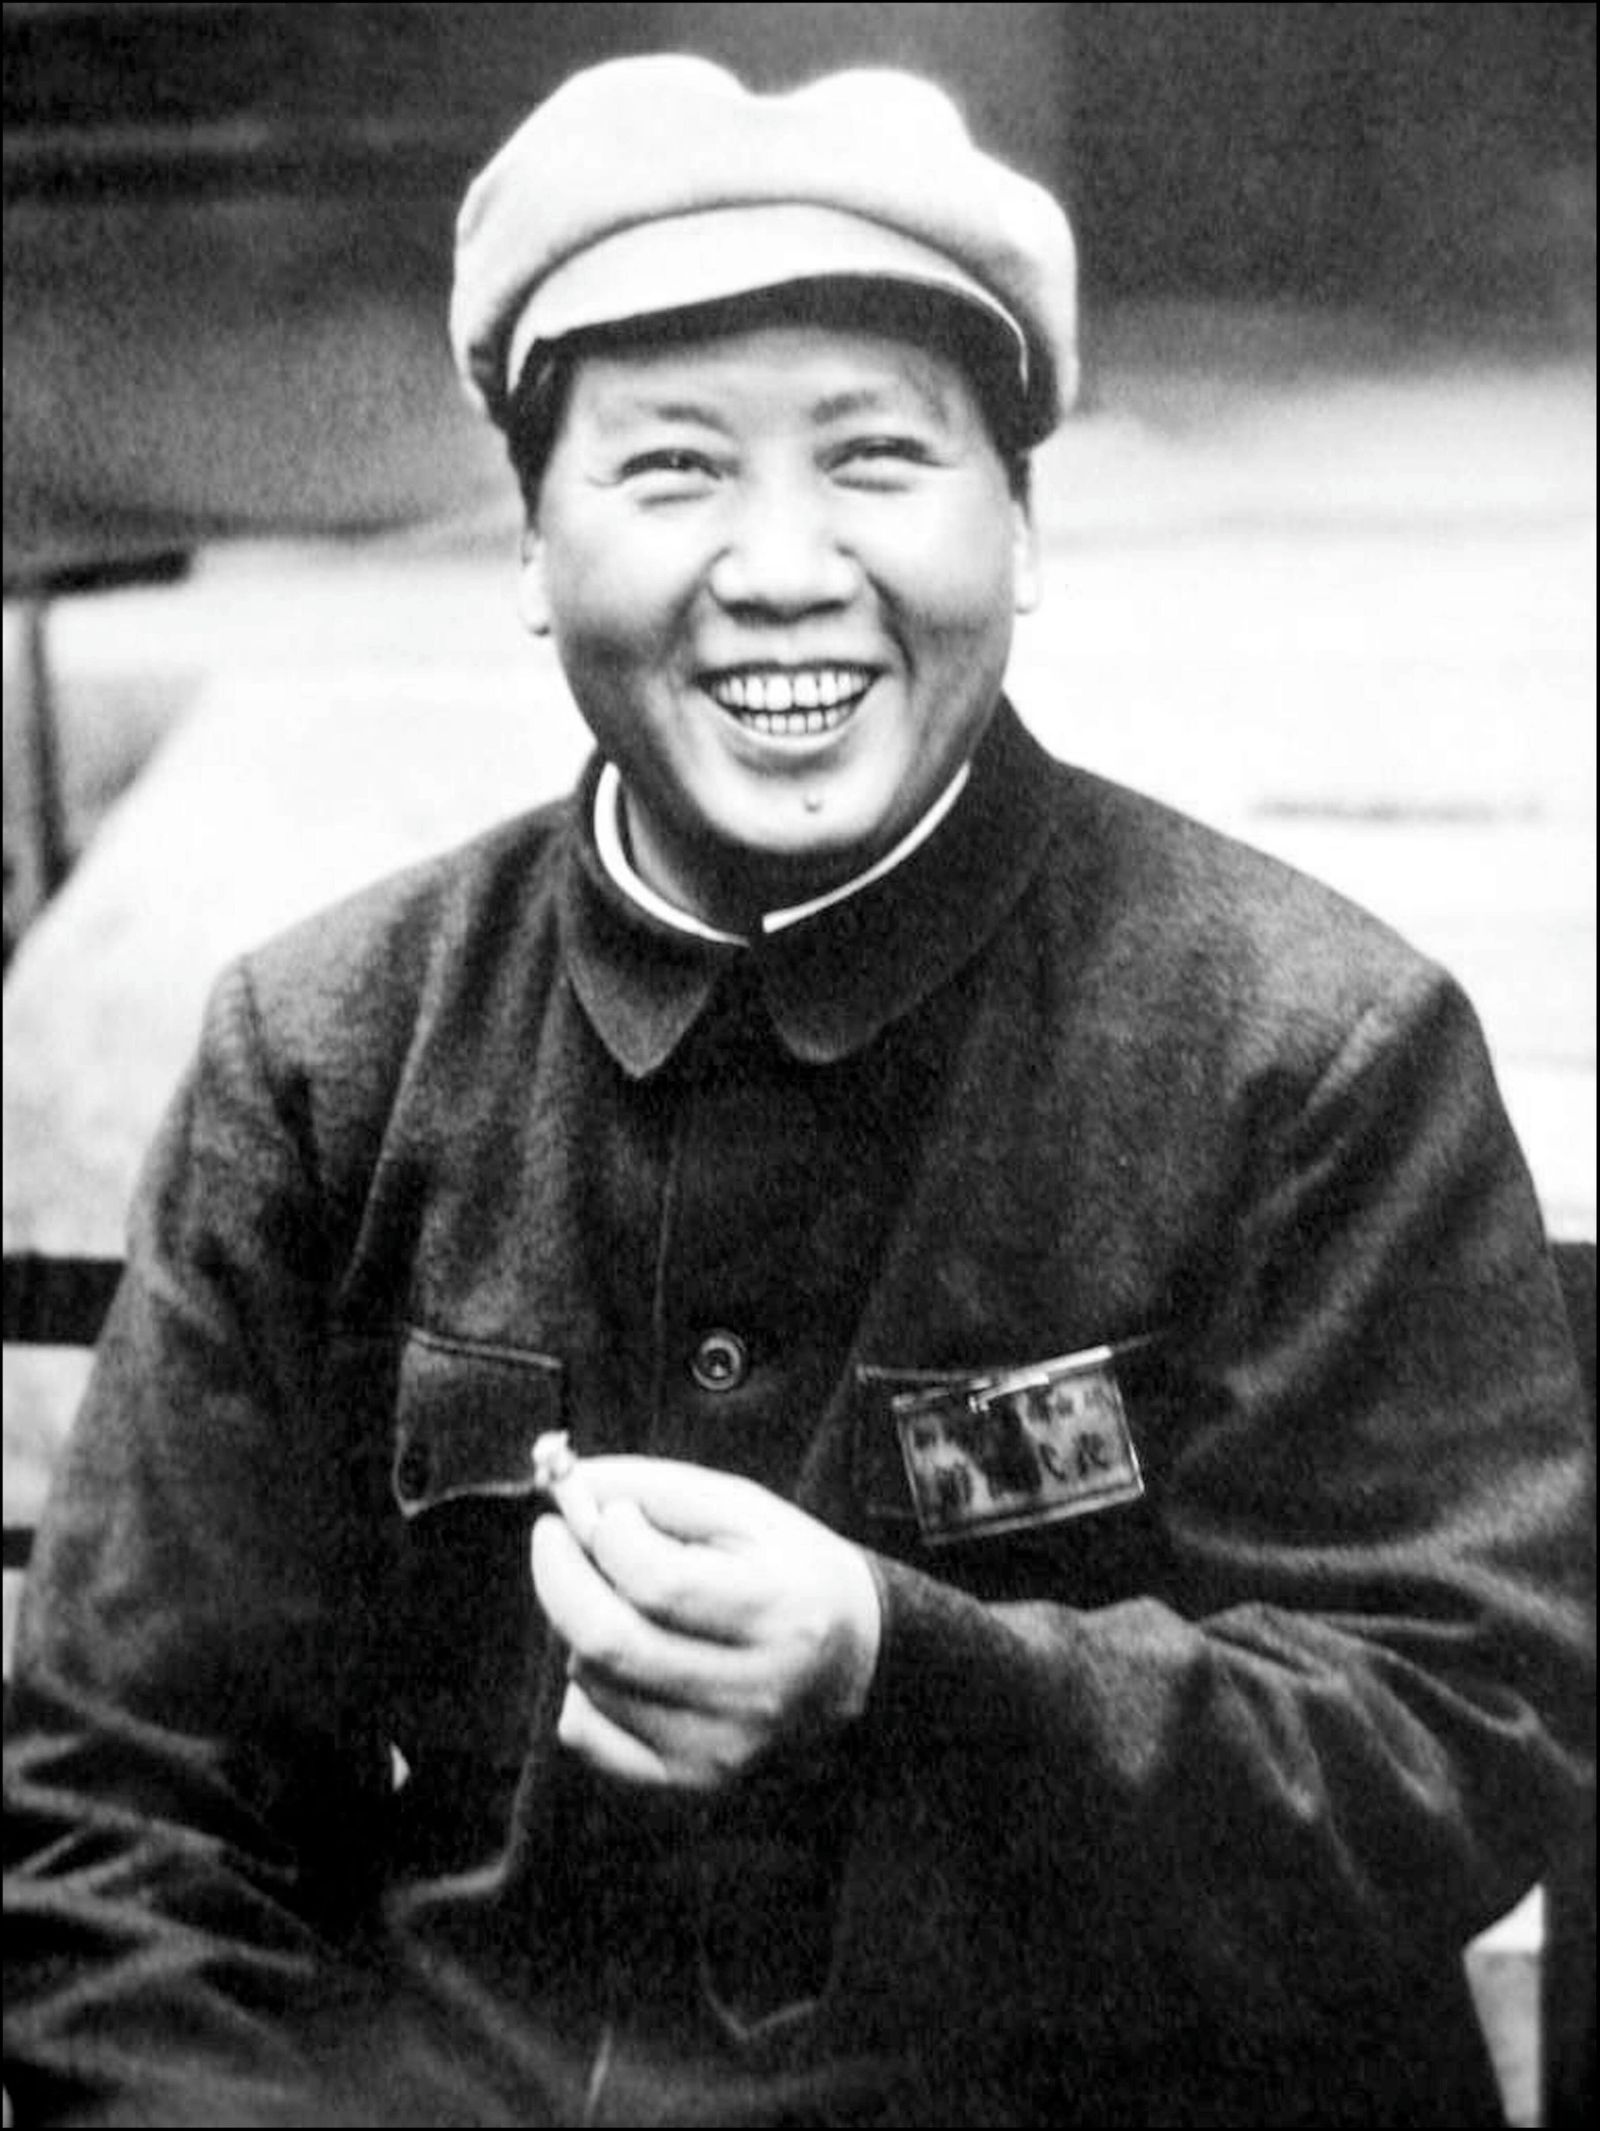 Mao Zedong, also transliterated as Mao Tse-tung (26 December 1893 9 September 1976), was a Chinese communist revolutiona